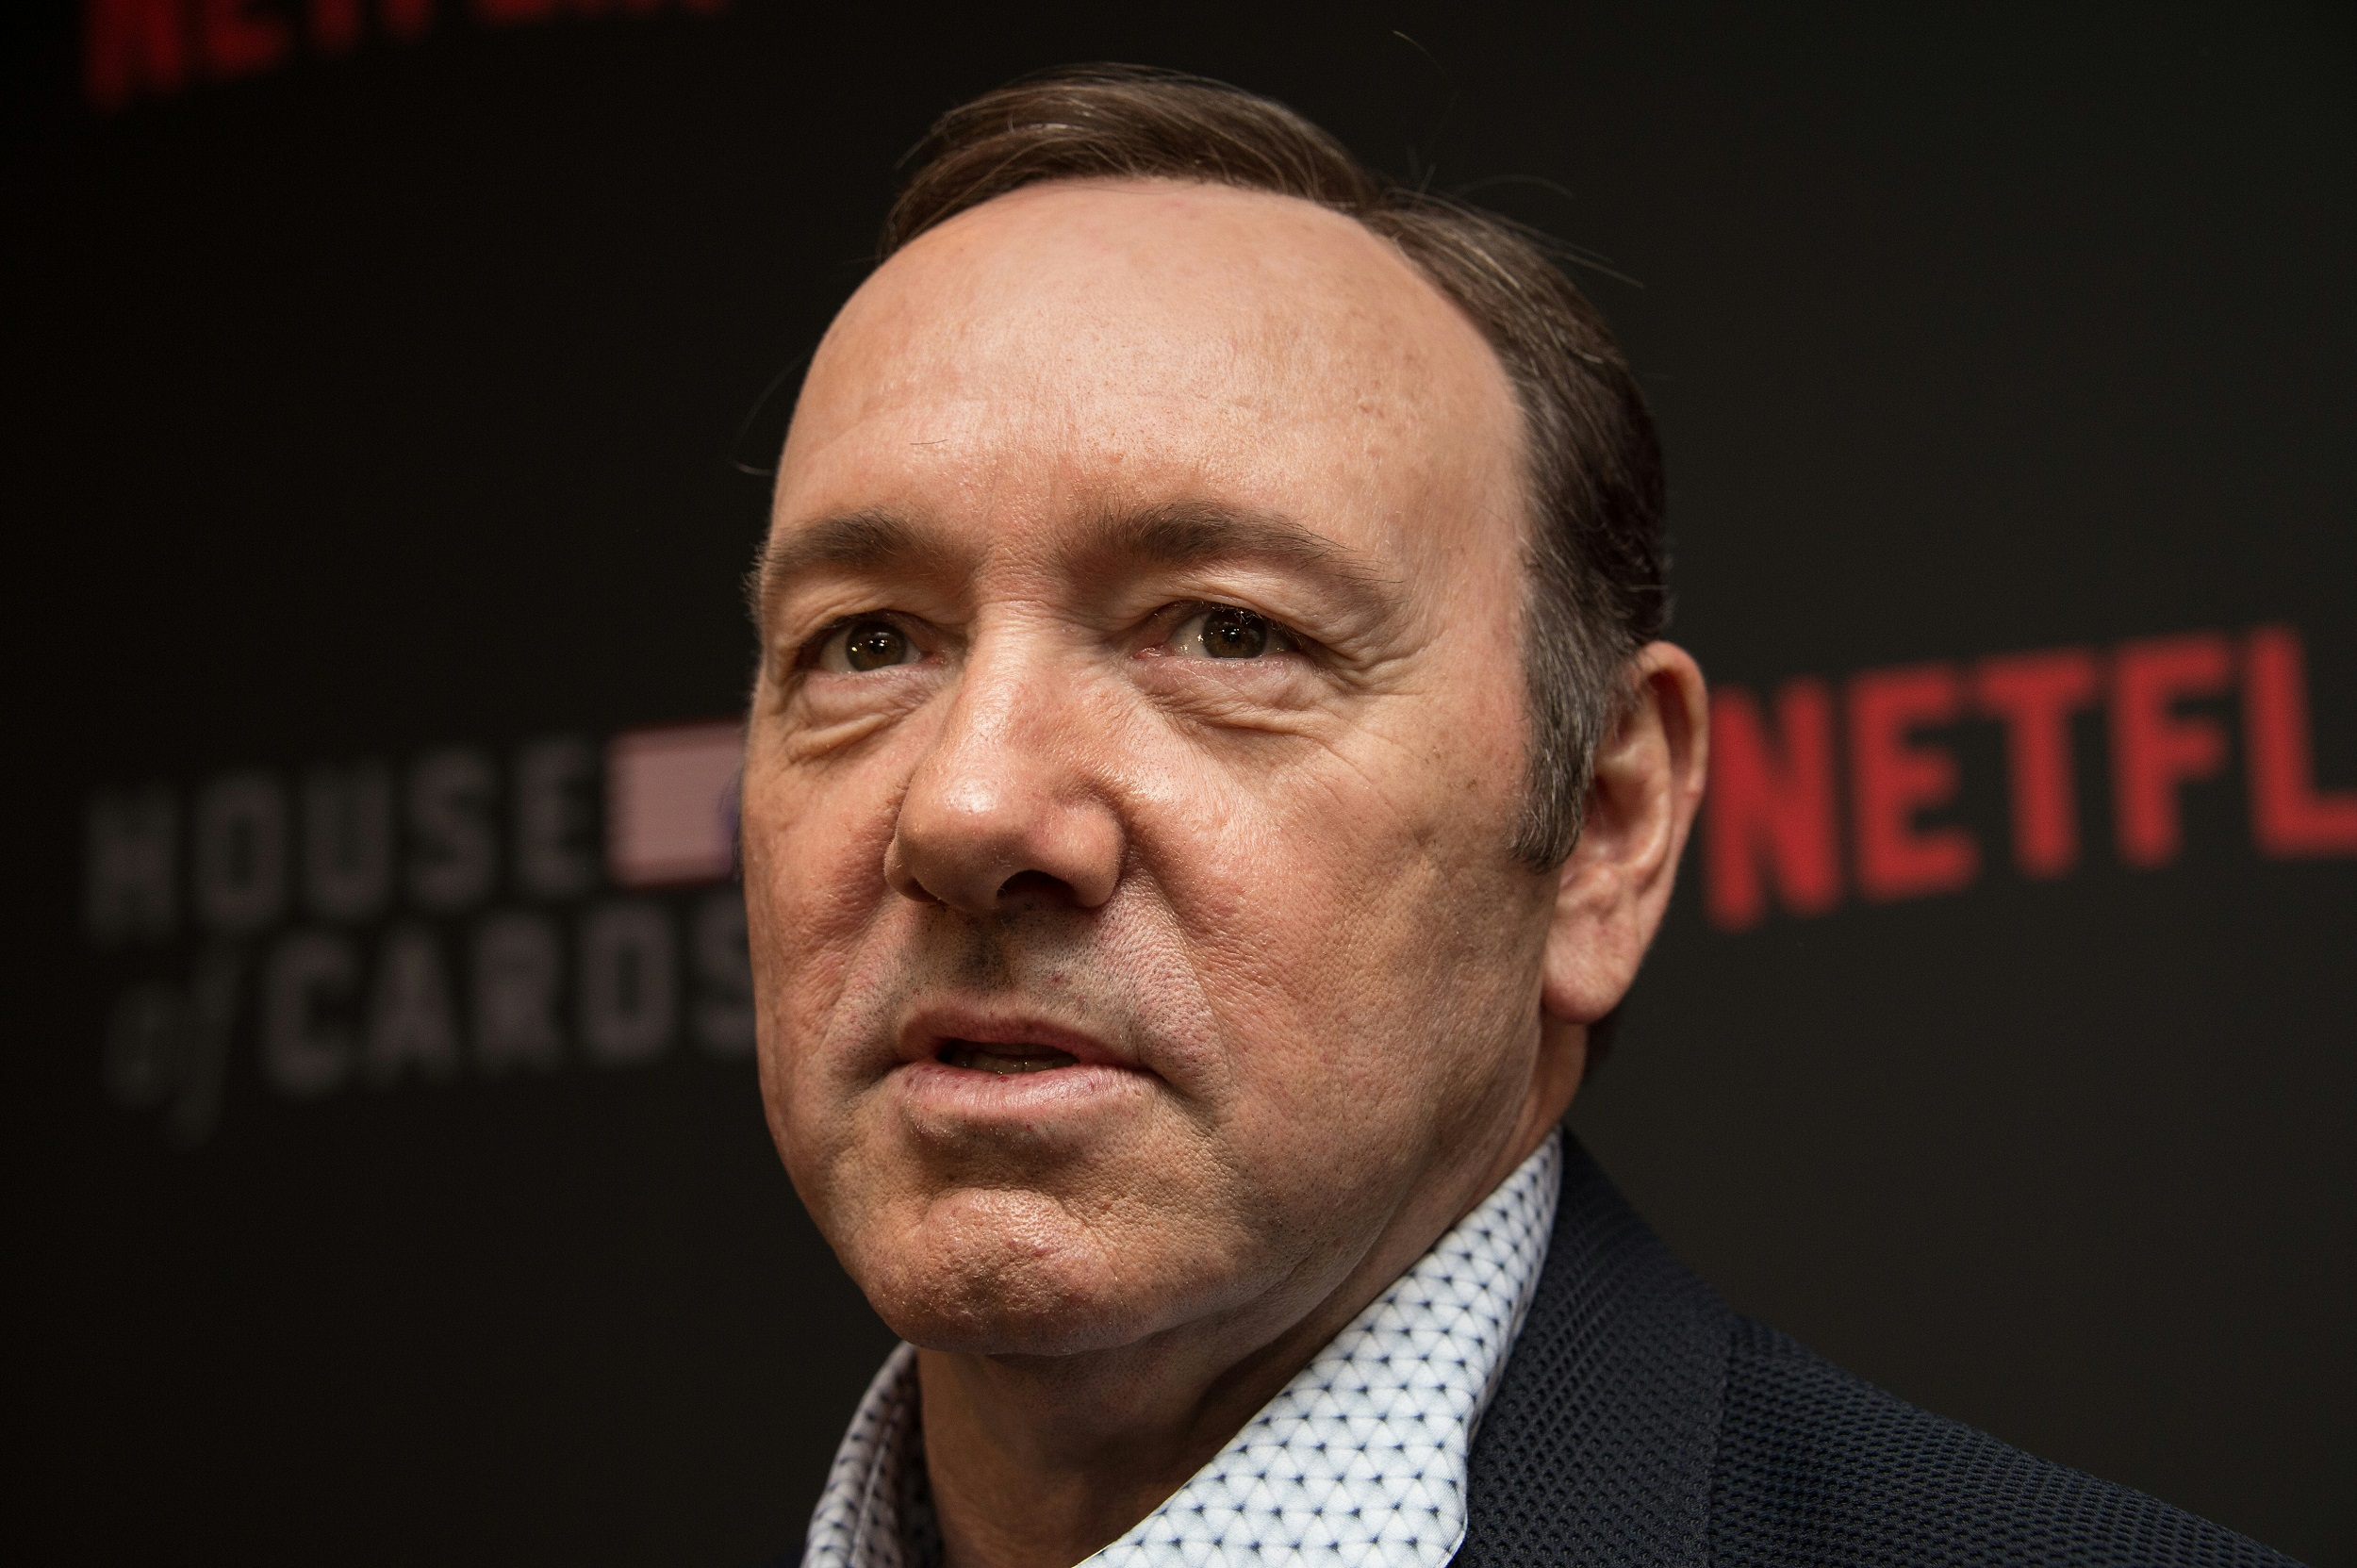 A Mexican mayor has plagiarised a speech by House of Cards' President Frank Underwood, played by Kevin Spacey.